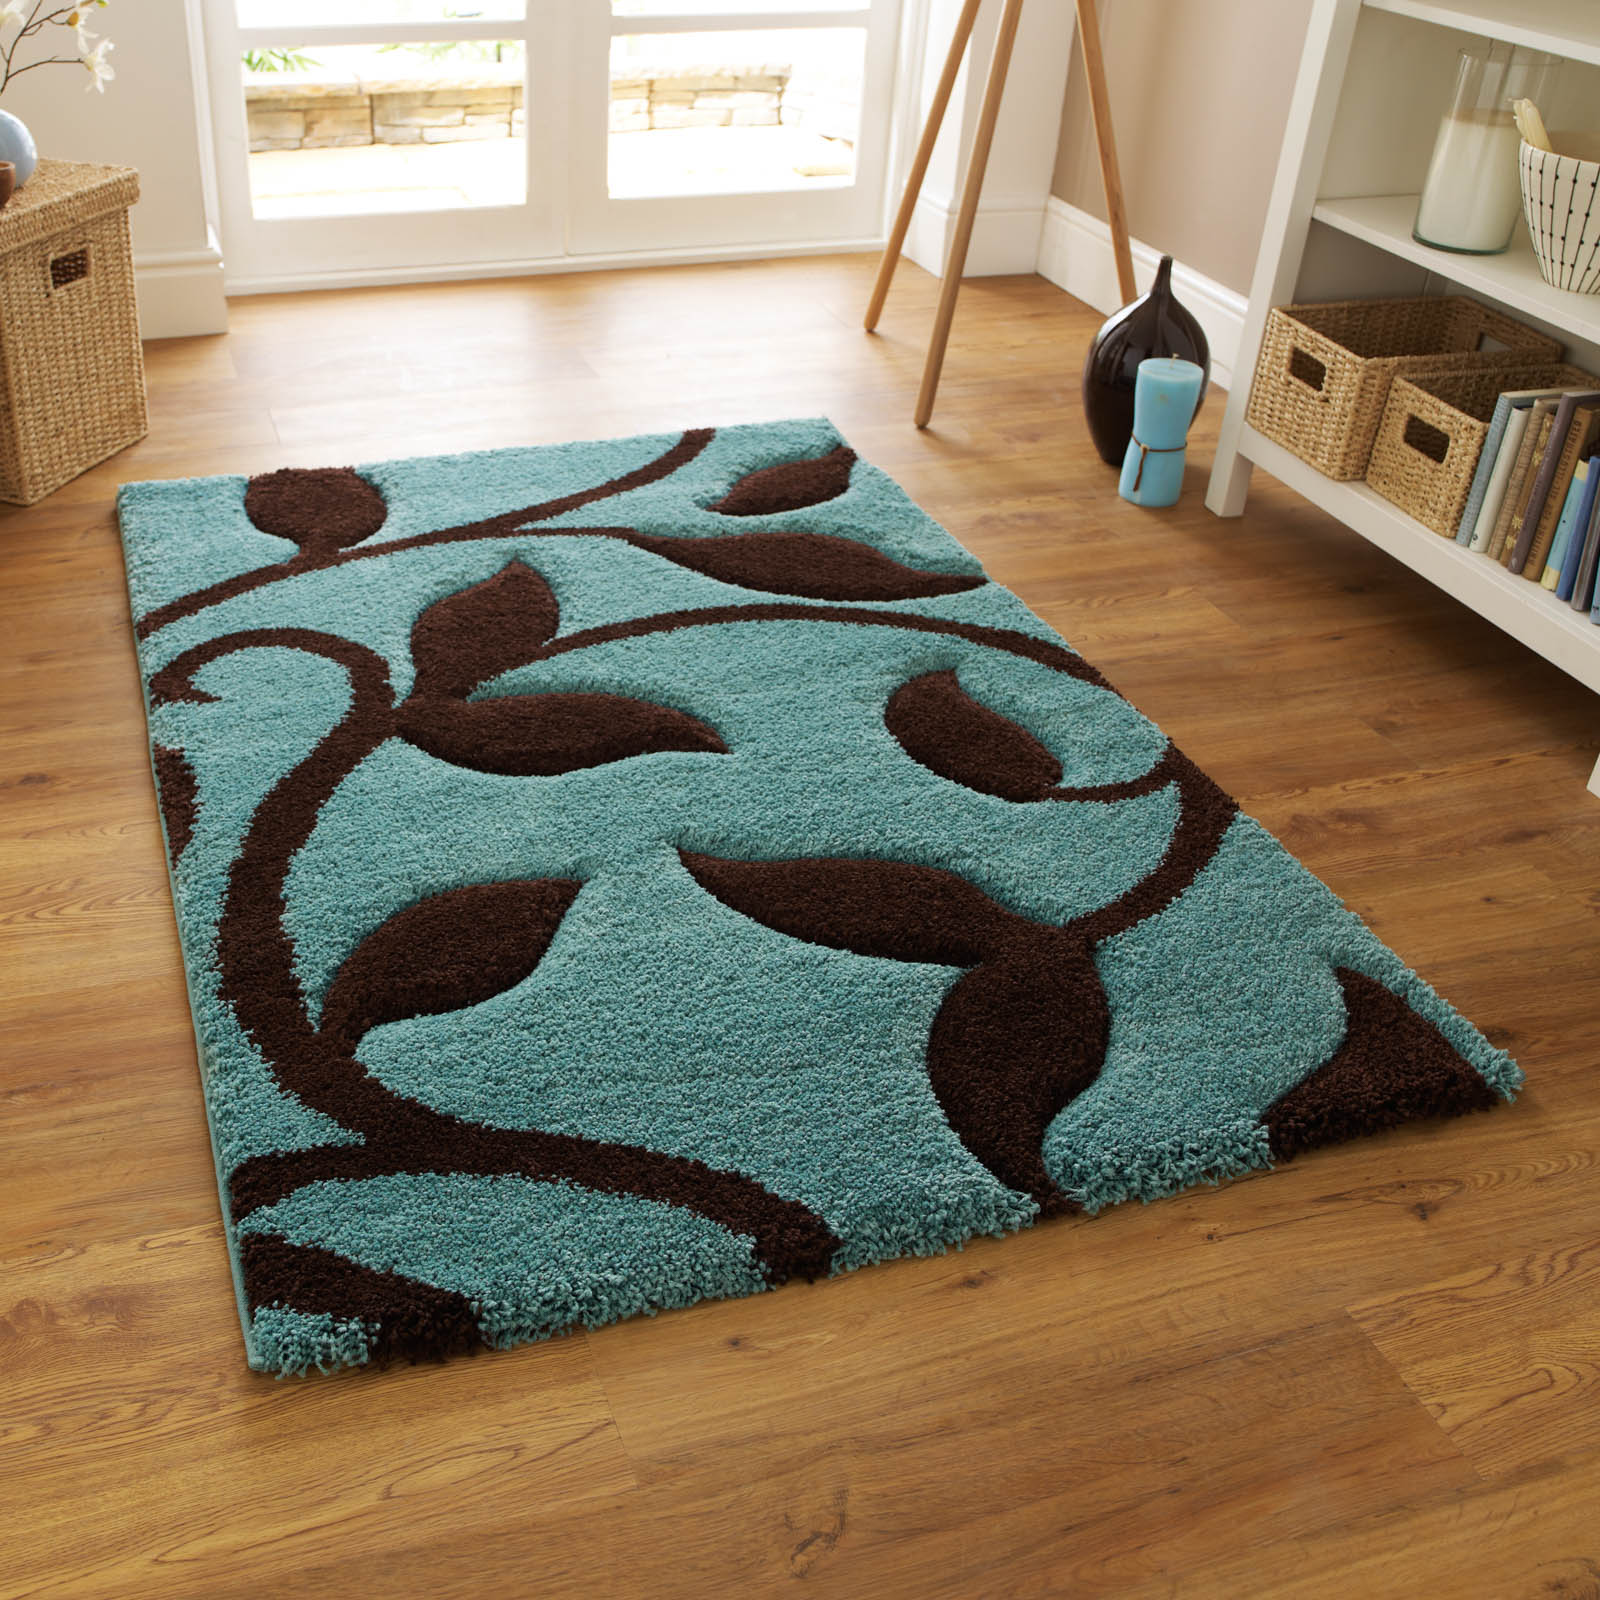 Fashion Carving 7647 Rugs in Blue Brown